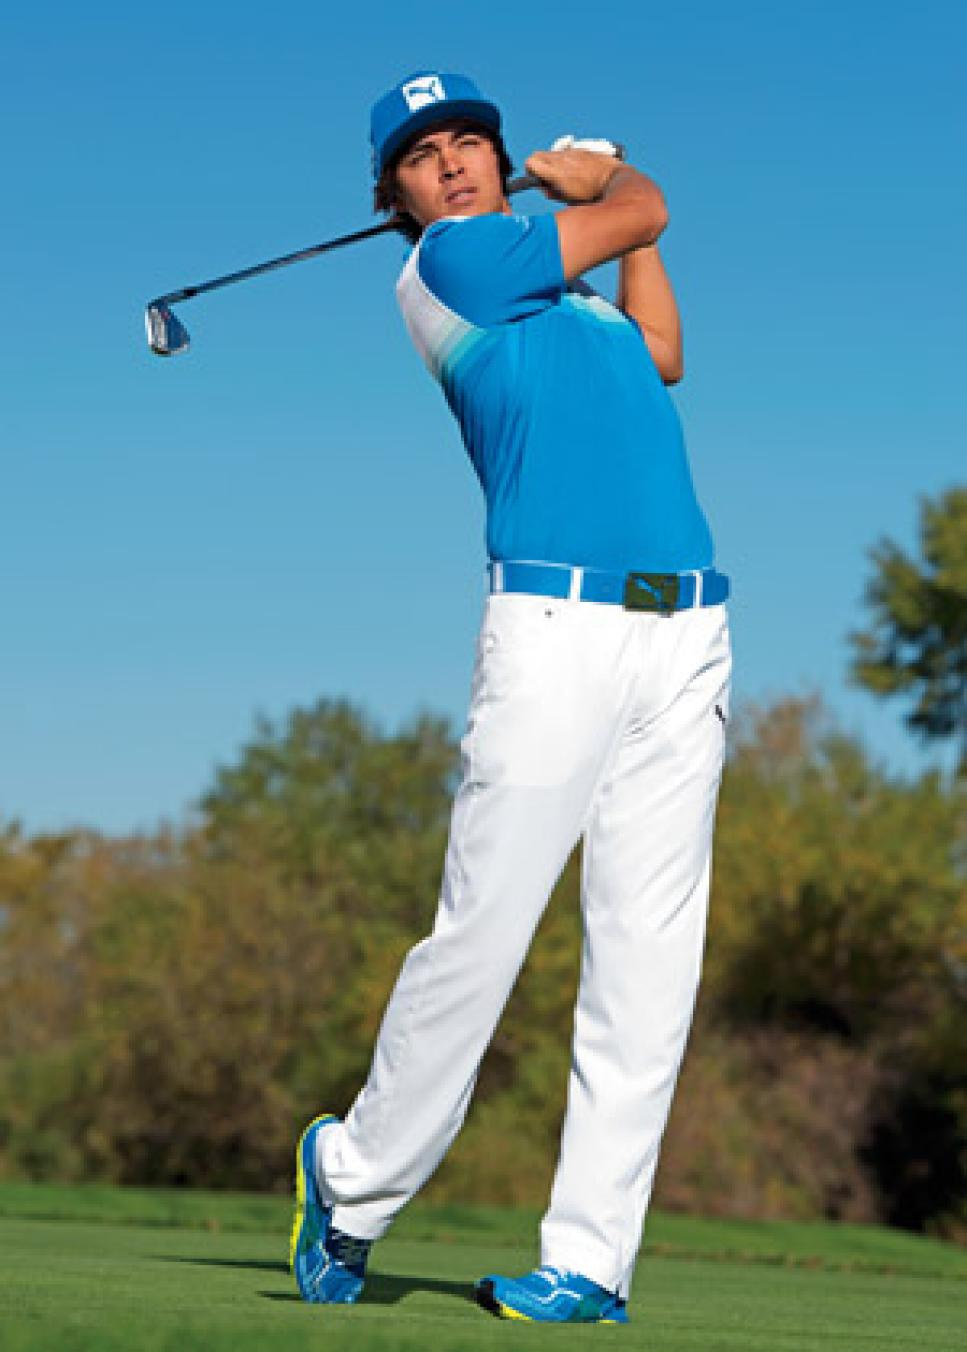 instruction-2013-07-inar01-rickie-fowler-swing-thought.jpg